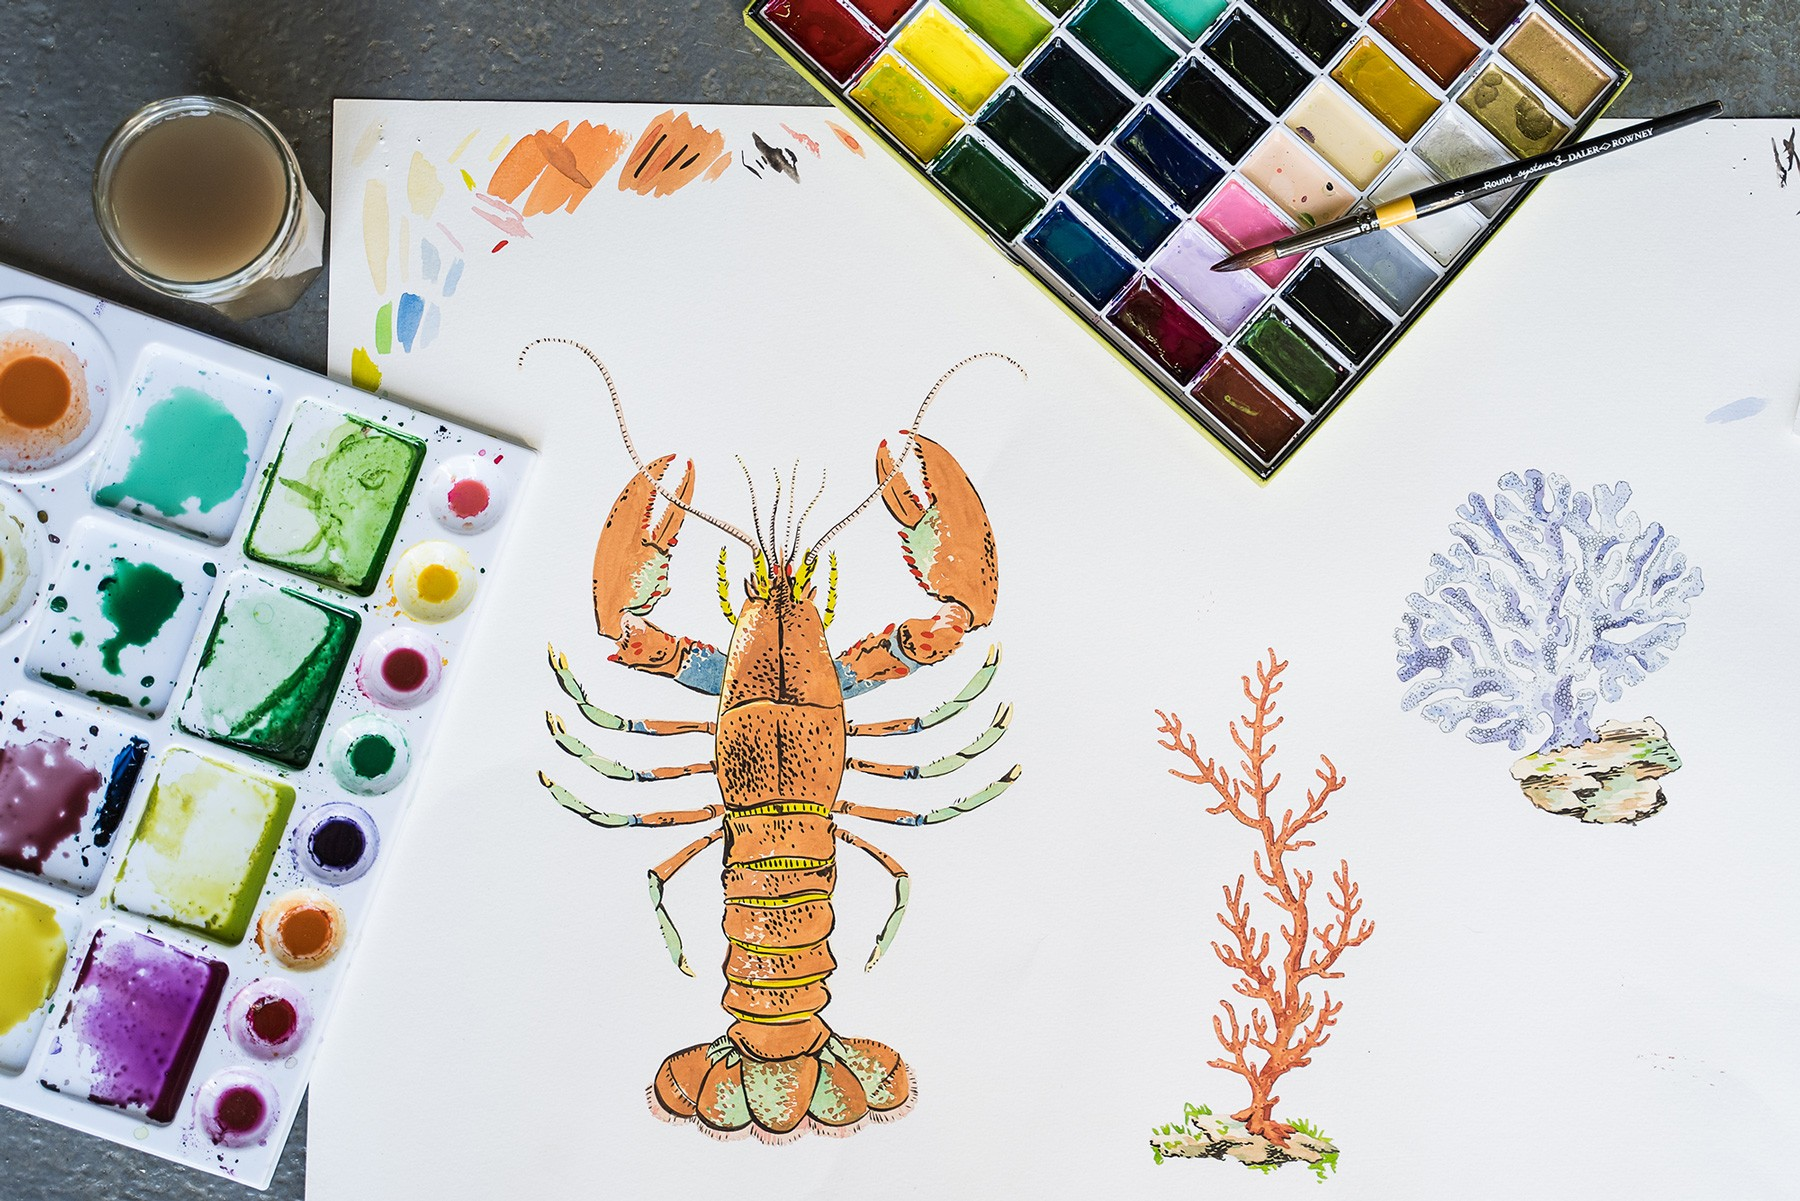 Image of Elizabeth Ockford's watercolour of the lobster and coral.